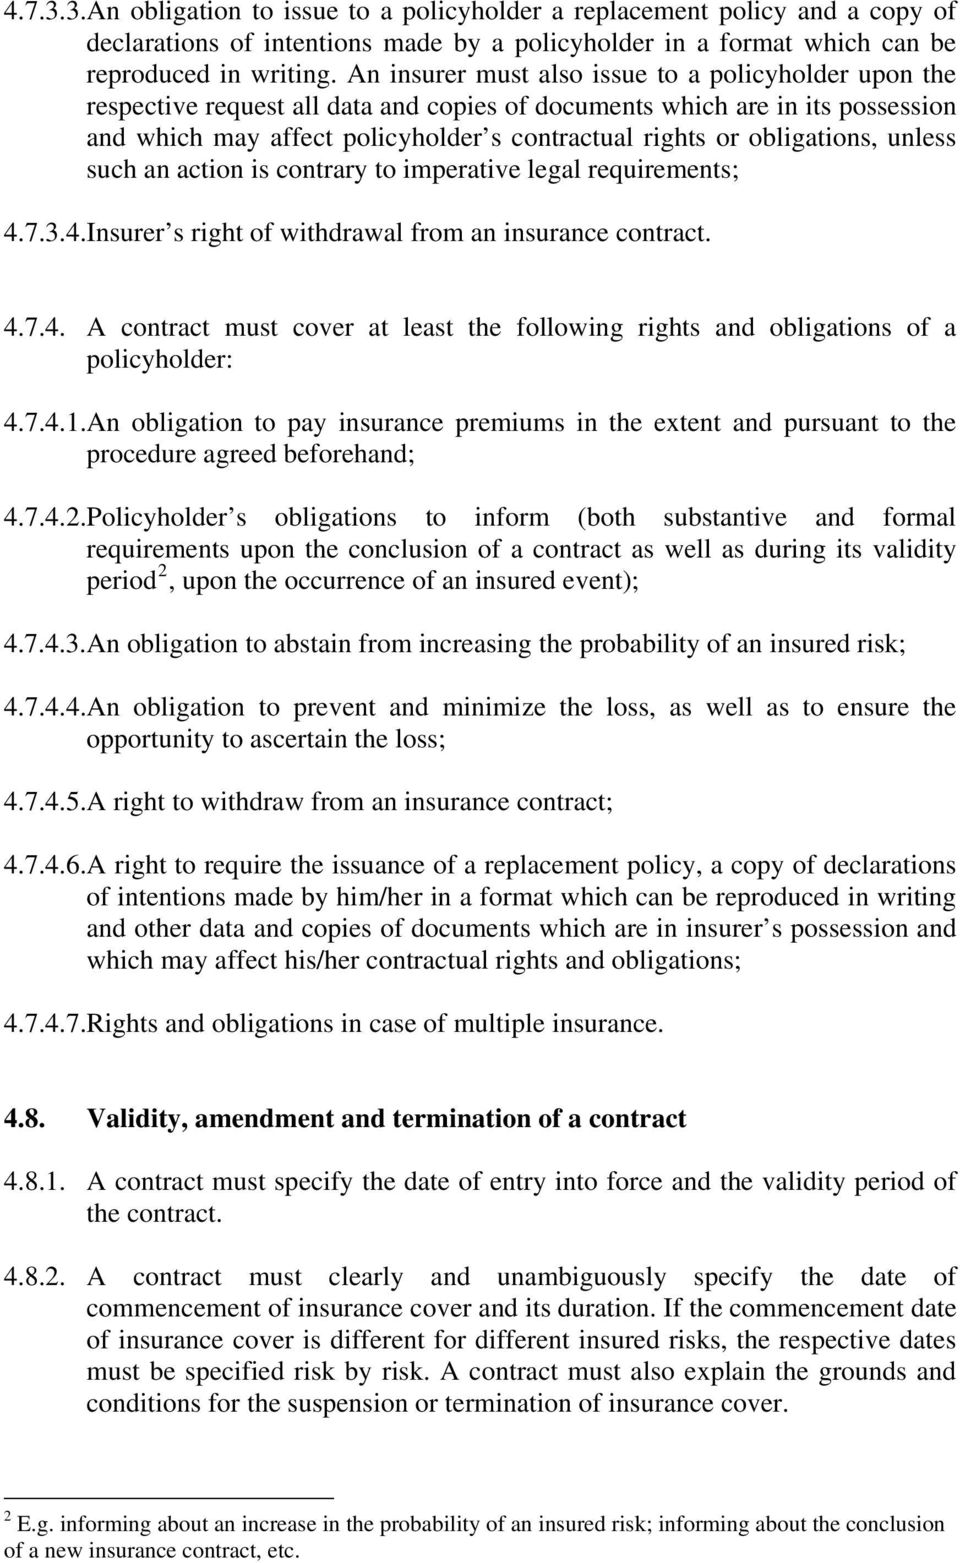 obligations, unless such an action is contrary to imperative legal requirements; 4.7.3.4.Insurer s right of withdrawal from an insurance contract. 4.7.4. A contract must cover at least the following rights and obligations of a policyholder: 4.